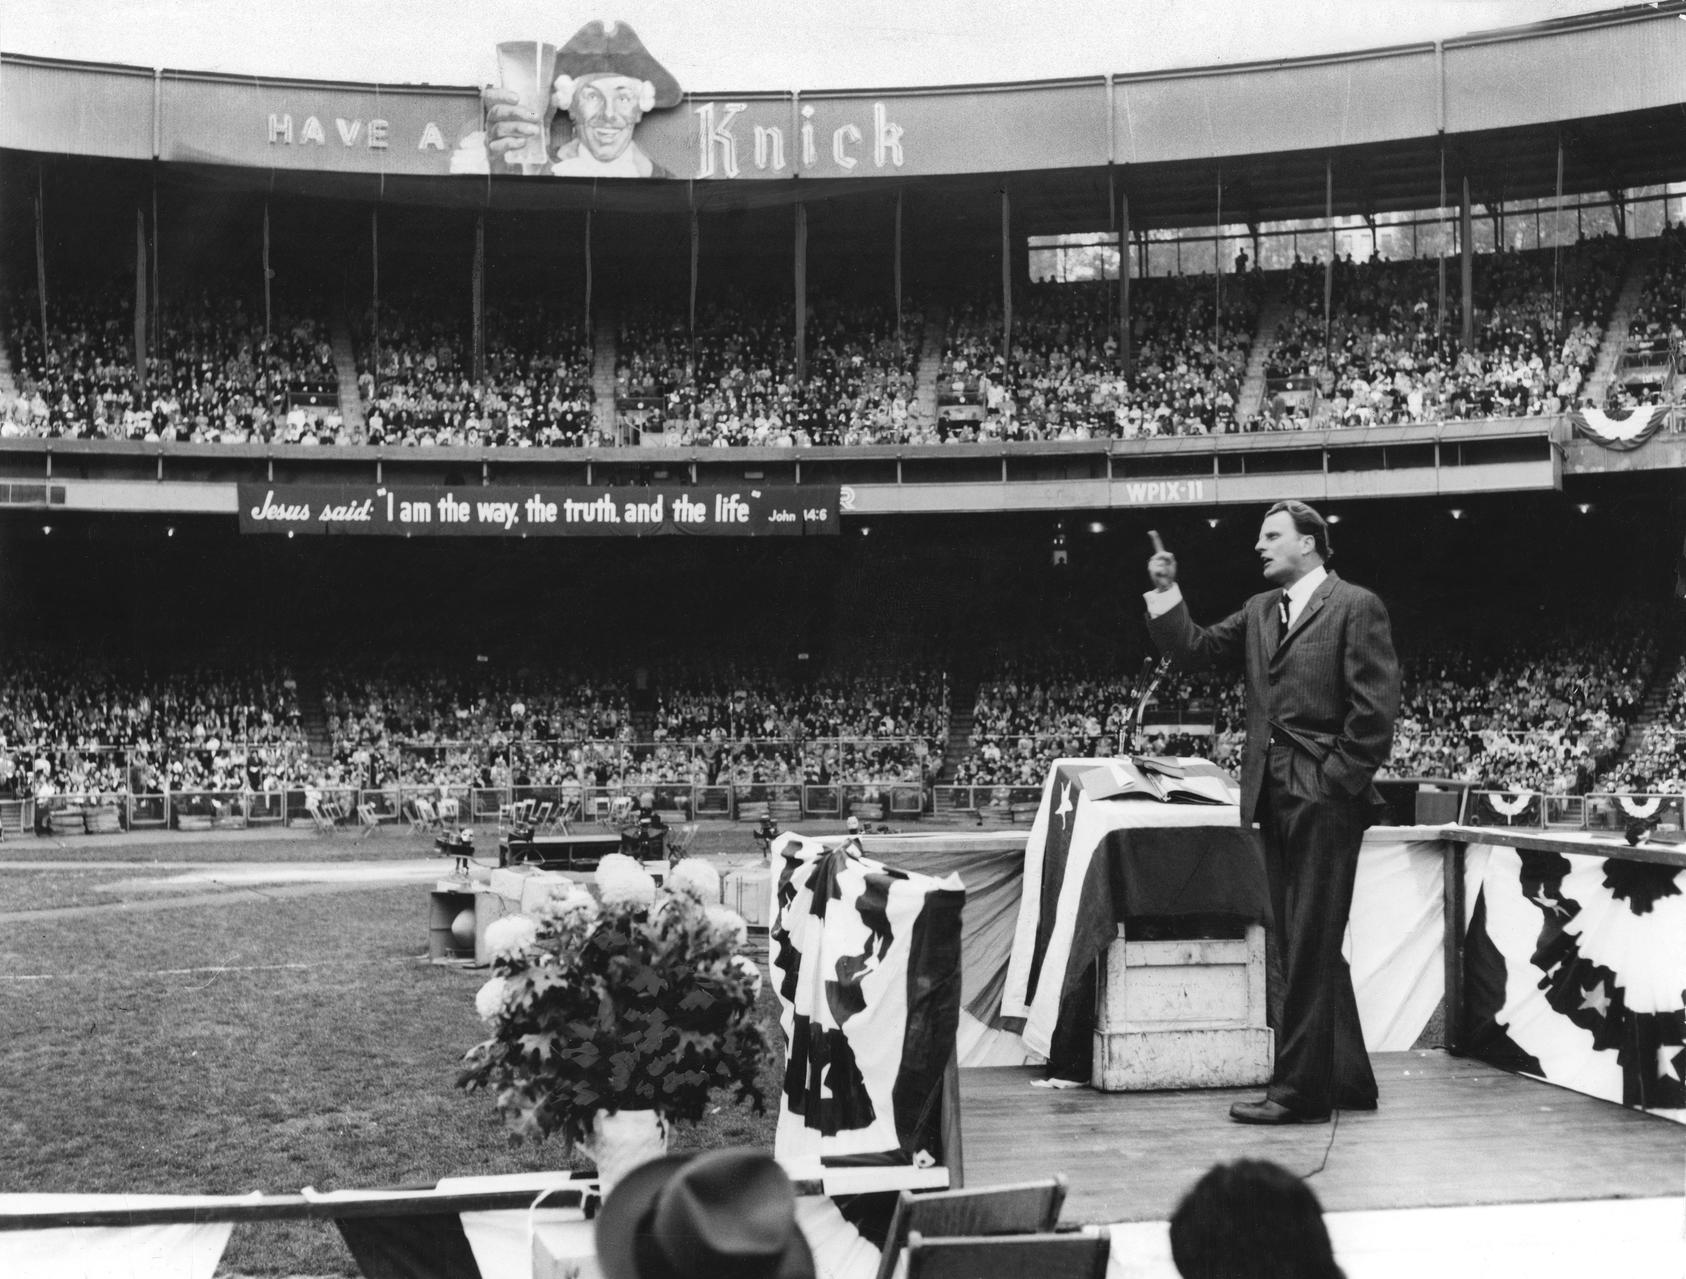 Reverend Billy Graham standing on a pulpit preaching to a stadium crowd. Photo courtesy of Allyn Baum and The New York Times